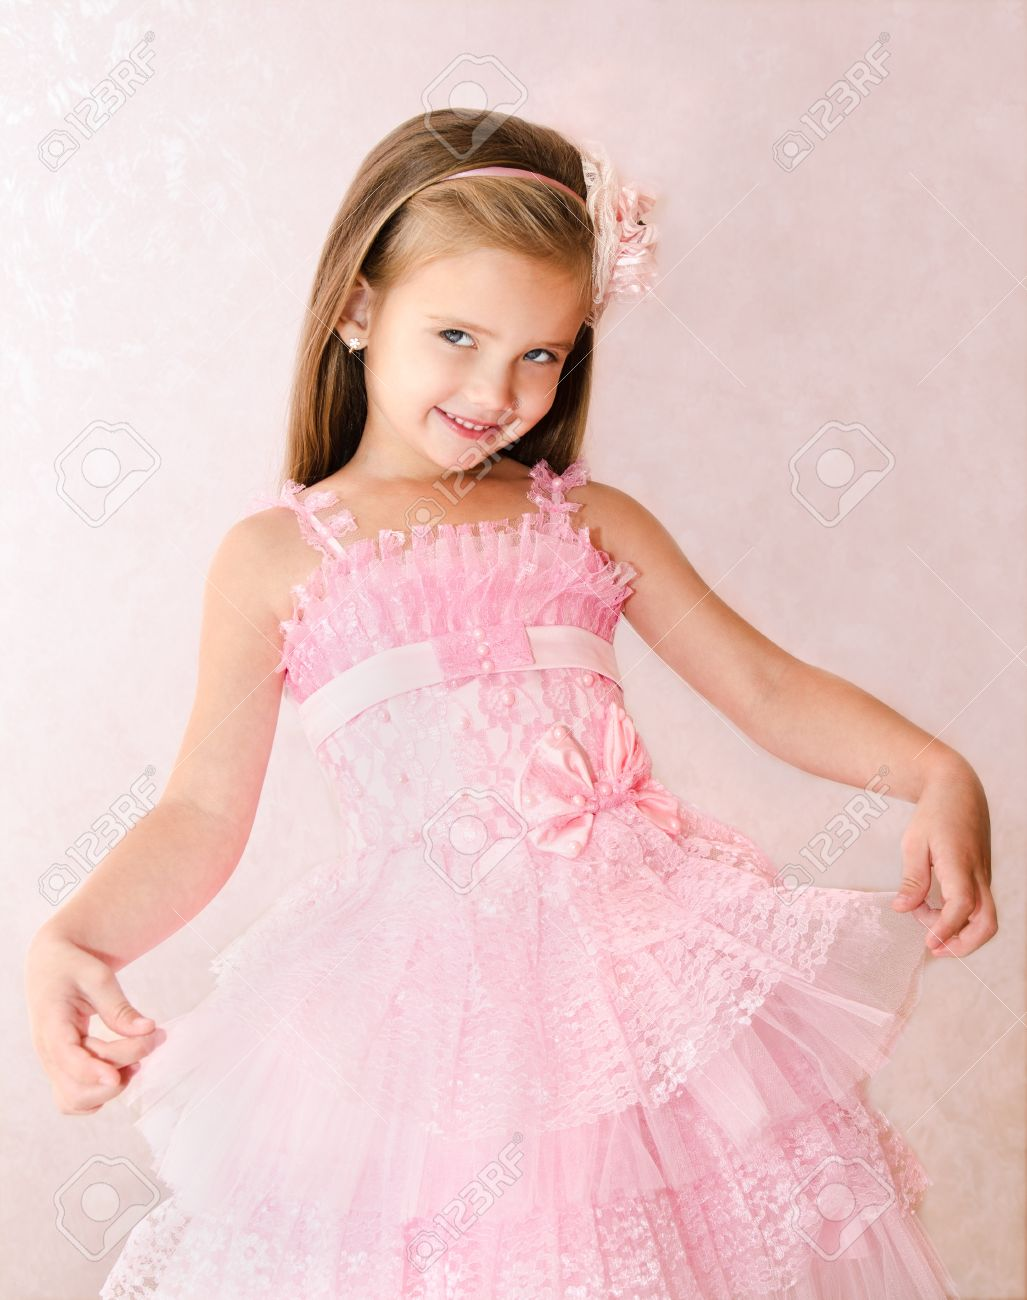 Portrait Of Cute Smiling Little Girl In Princess Dress Stock Photo ...